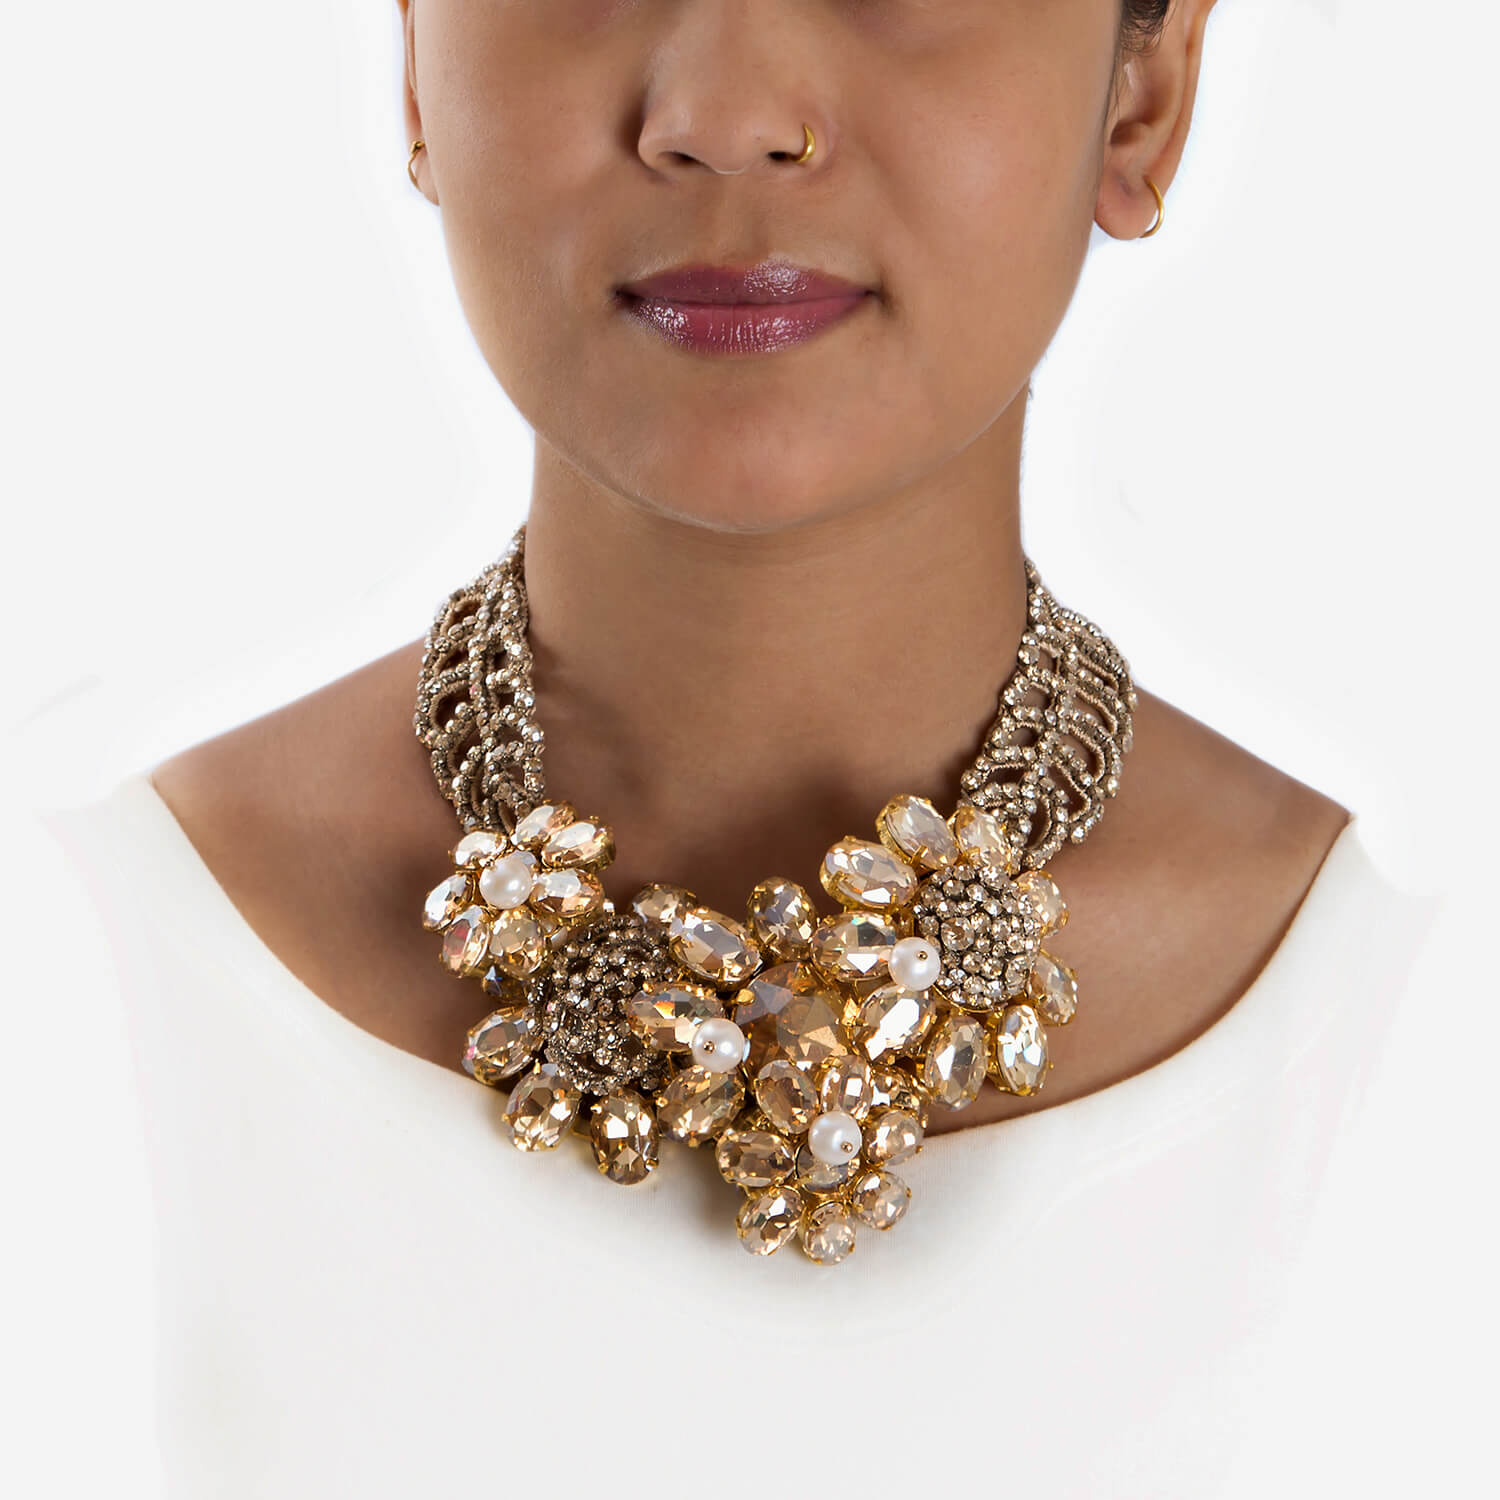 Rosanna Champagne Necklace - Model